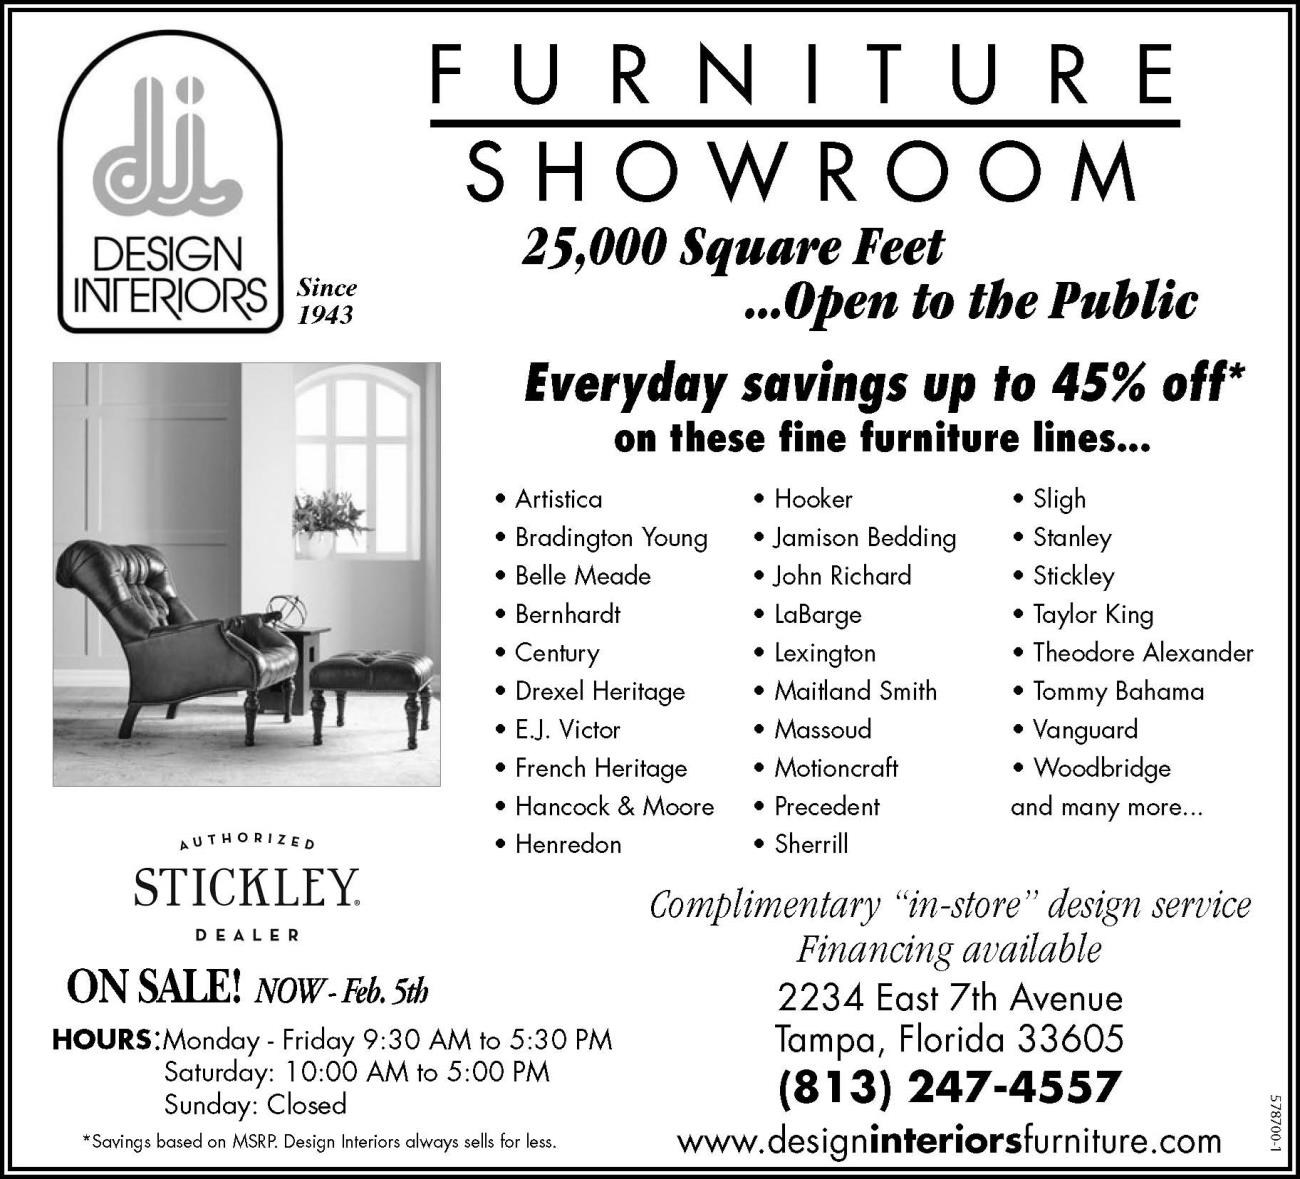 STICKLEY ON SALE NOW!